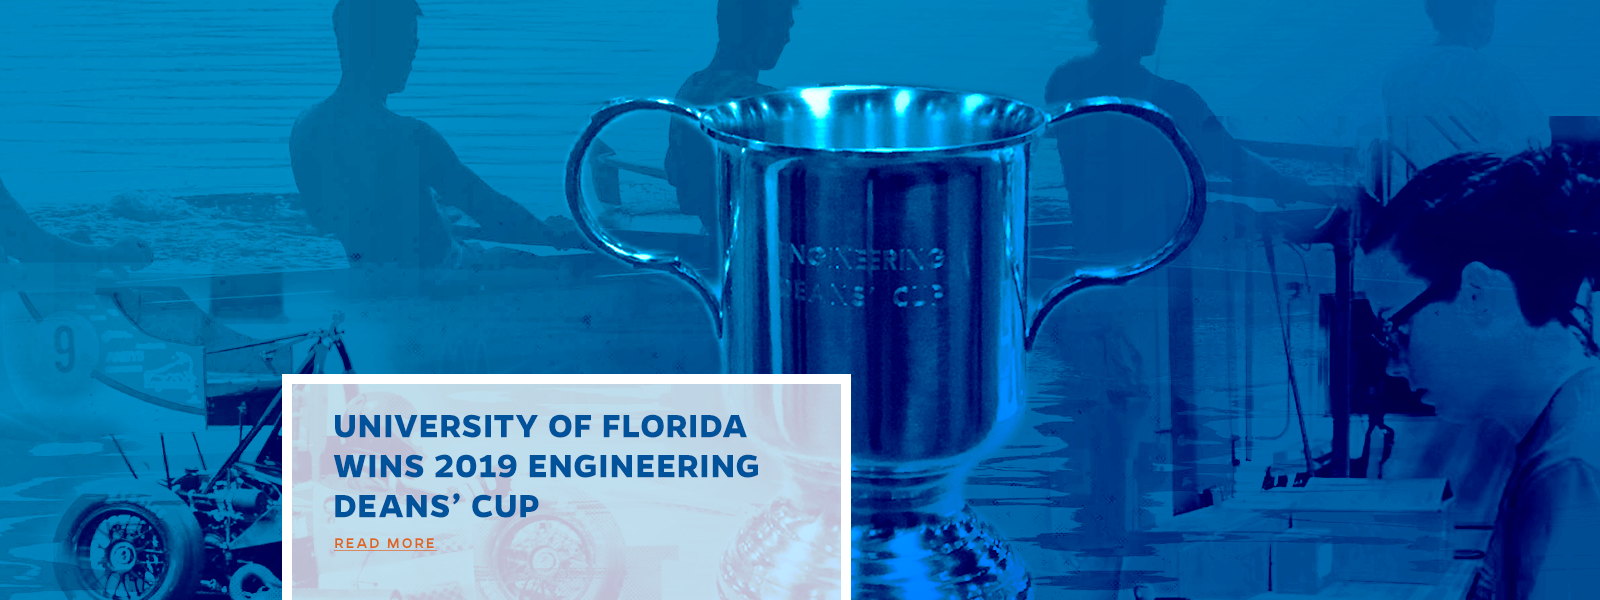 University of Florida wins 2019 Engineering Deans' Cup